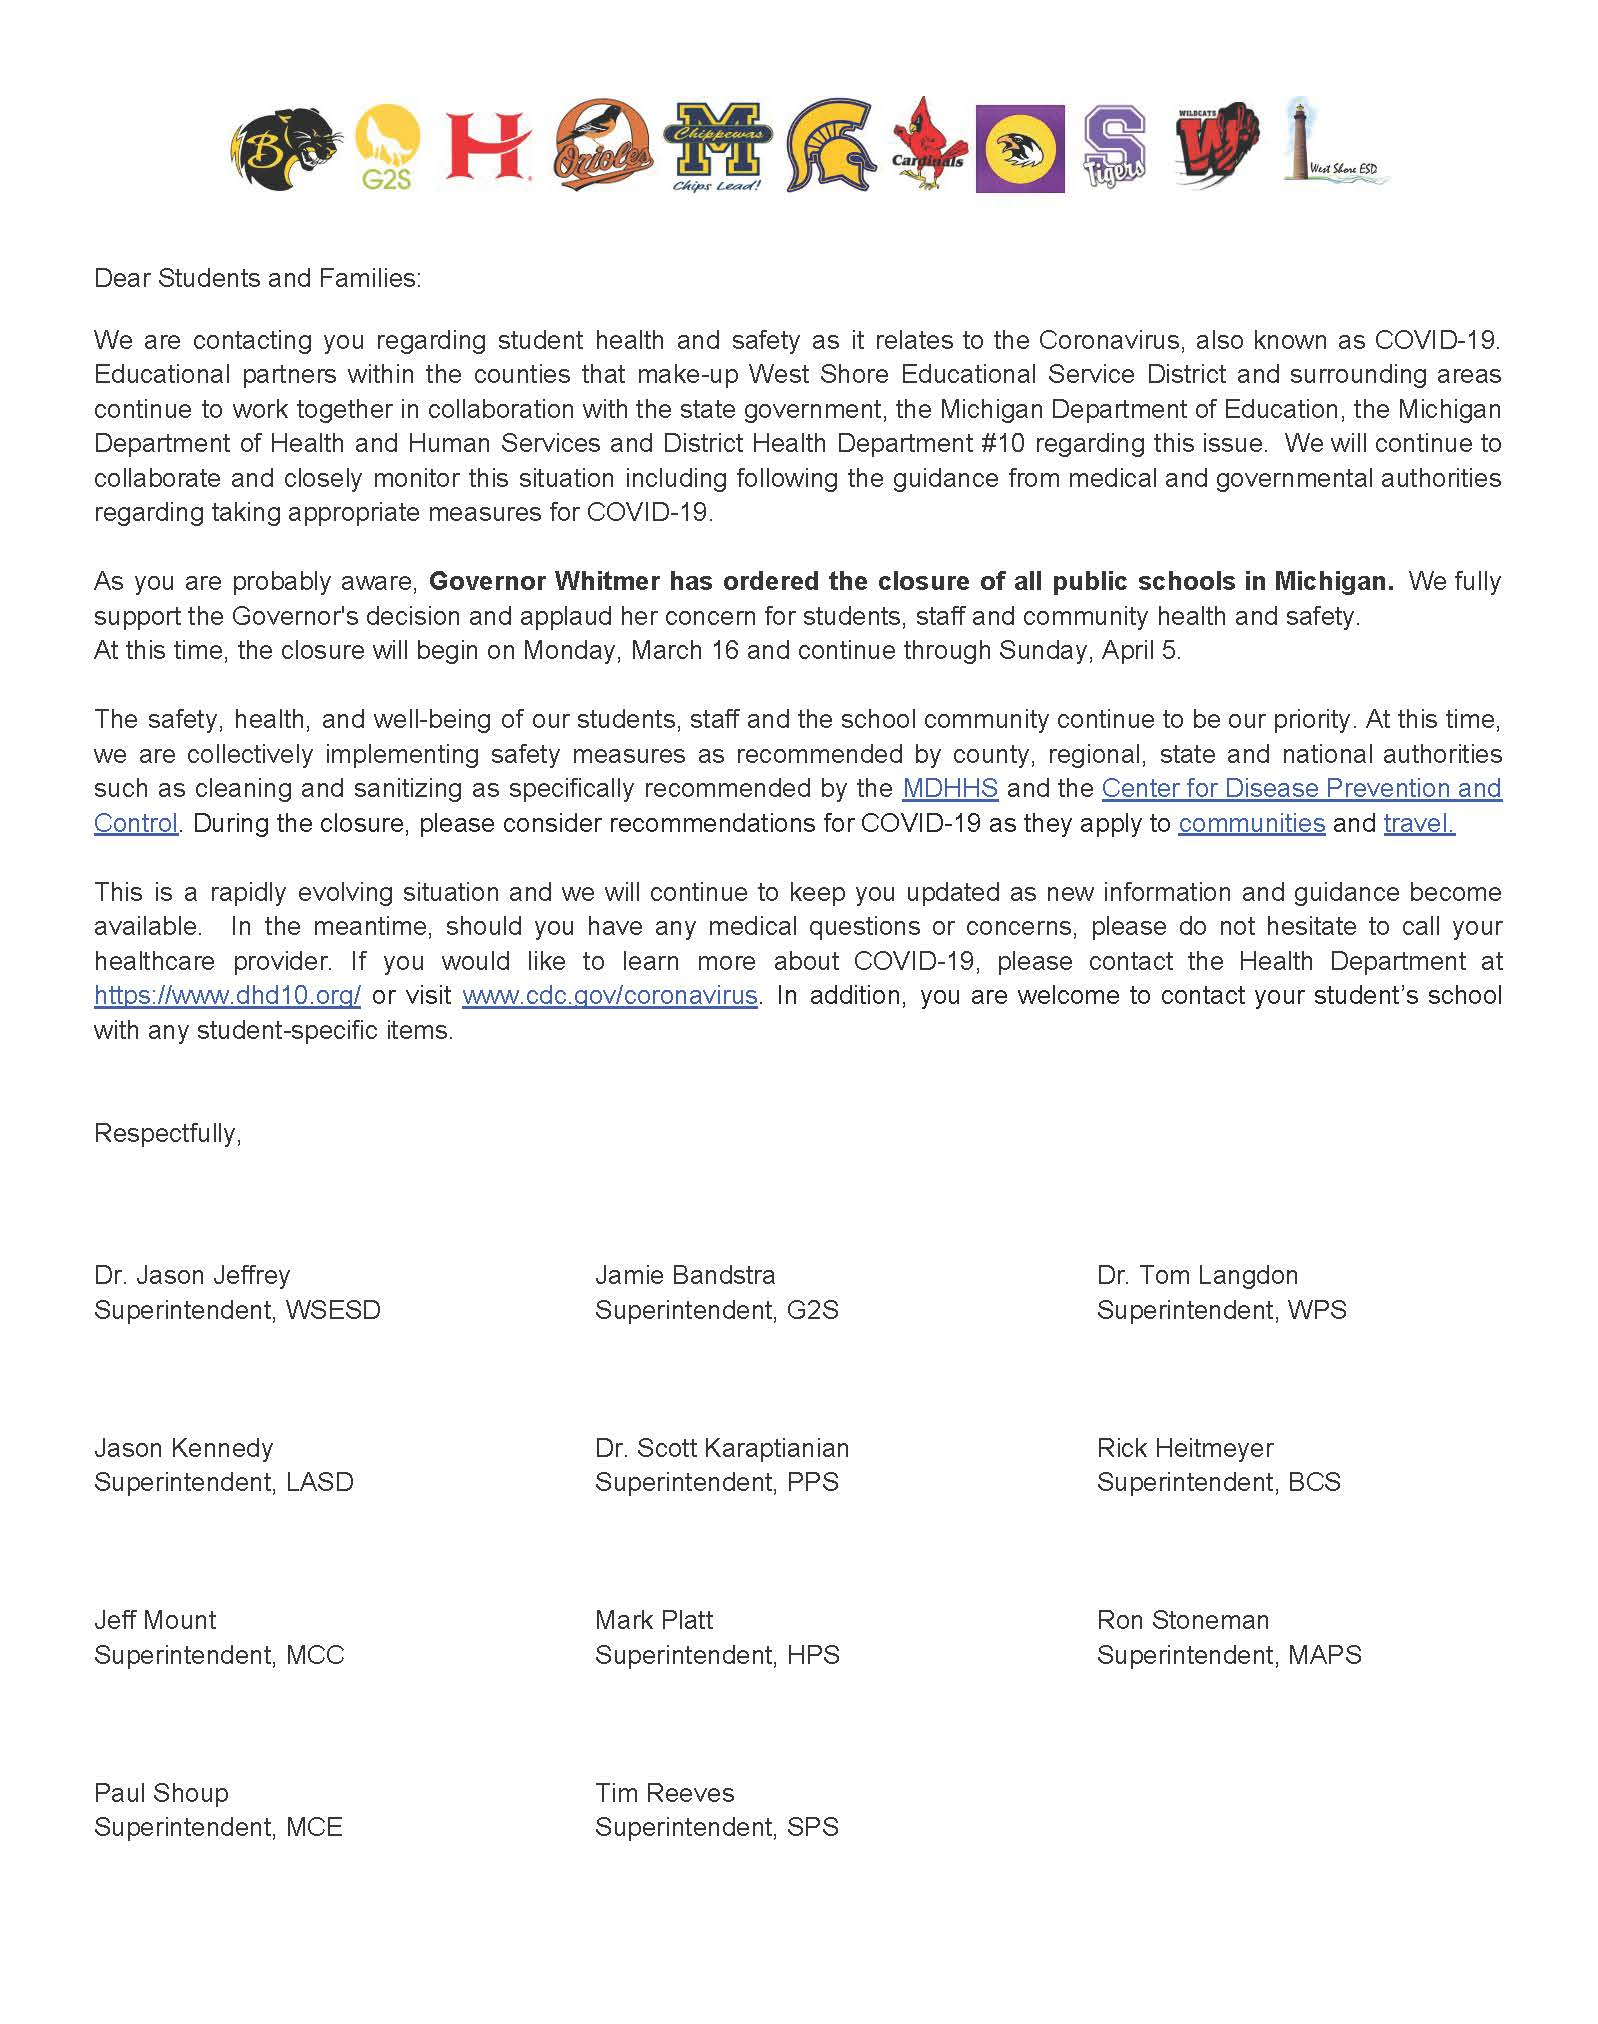 Letter image from the WSESD